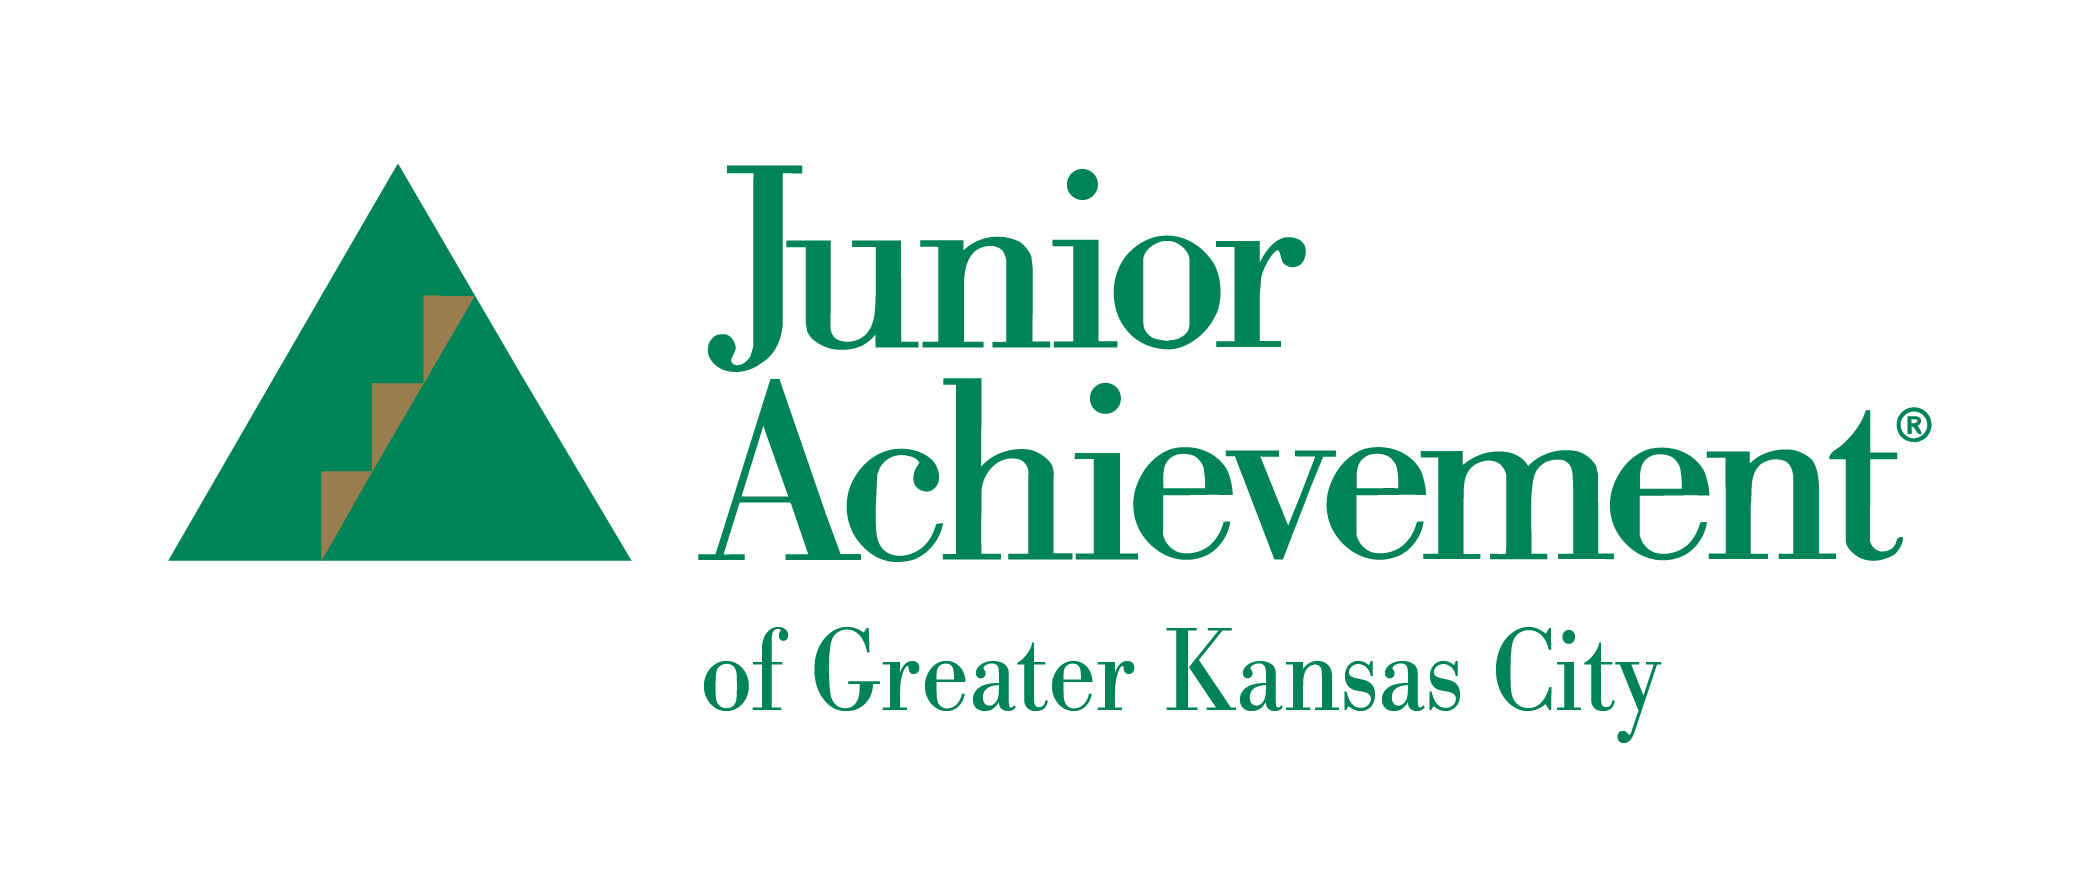 Junior Achievement of Middle America New Offices & Ribbon Cutting Ceremony | Kansas City